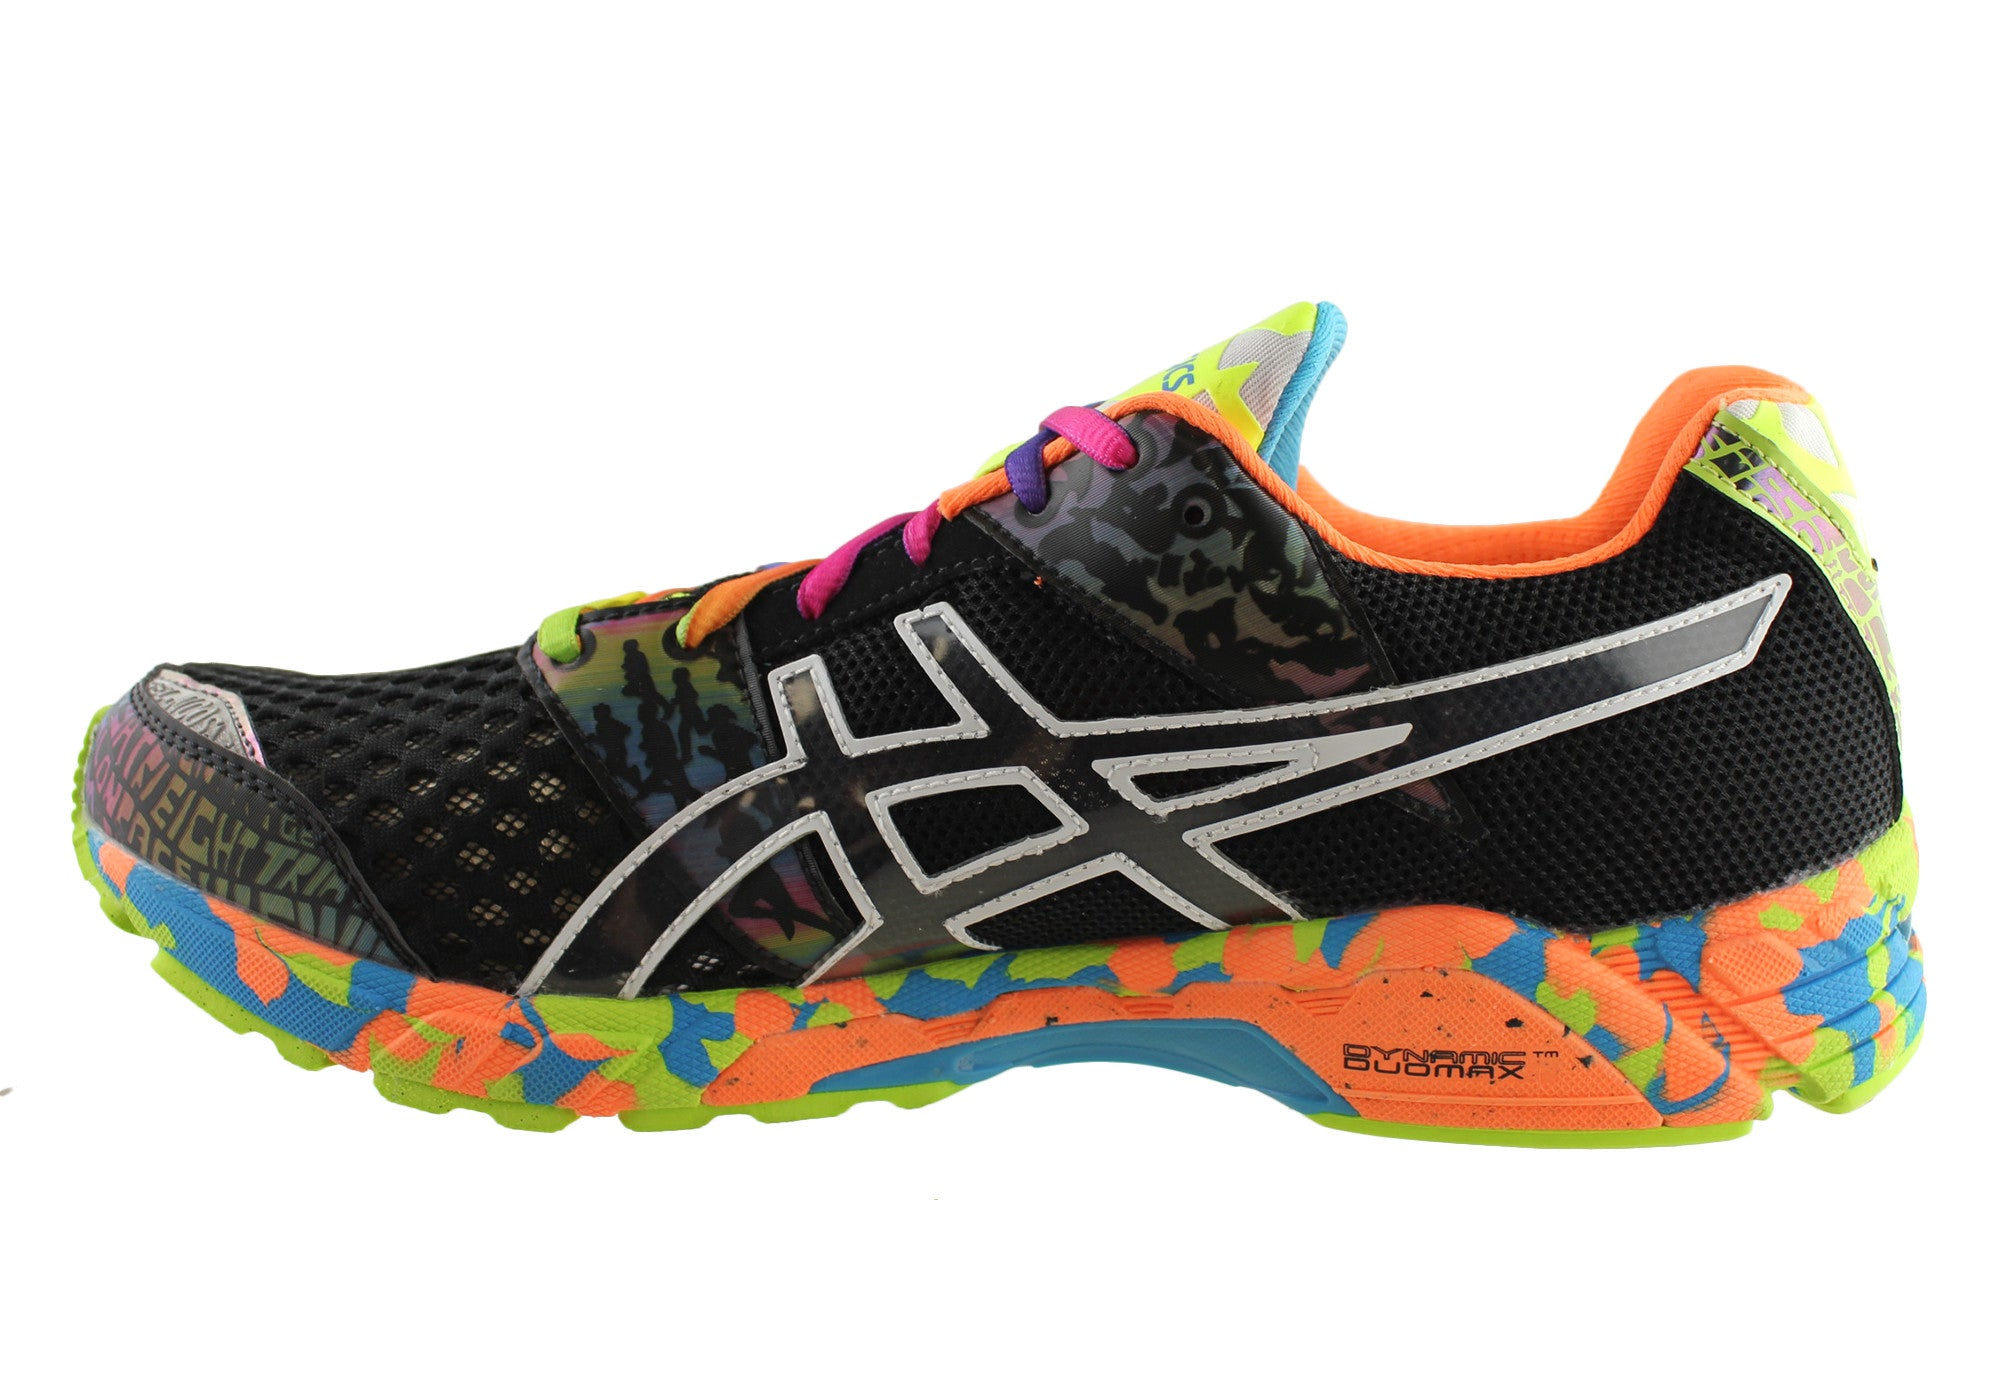 Asics Gel Noosa Tri 8 Mens Running Shoes